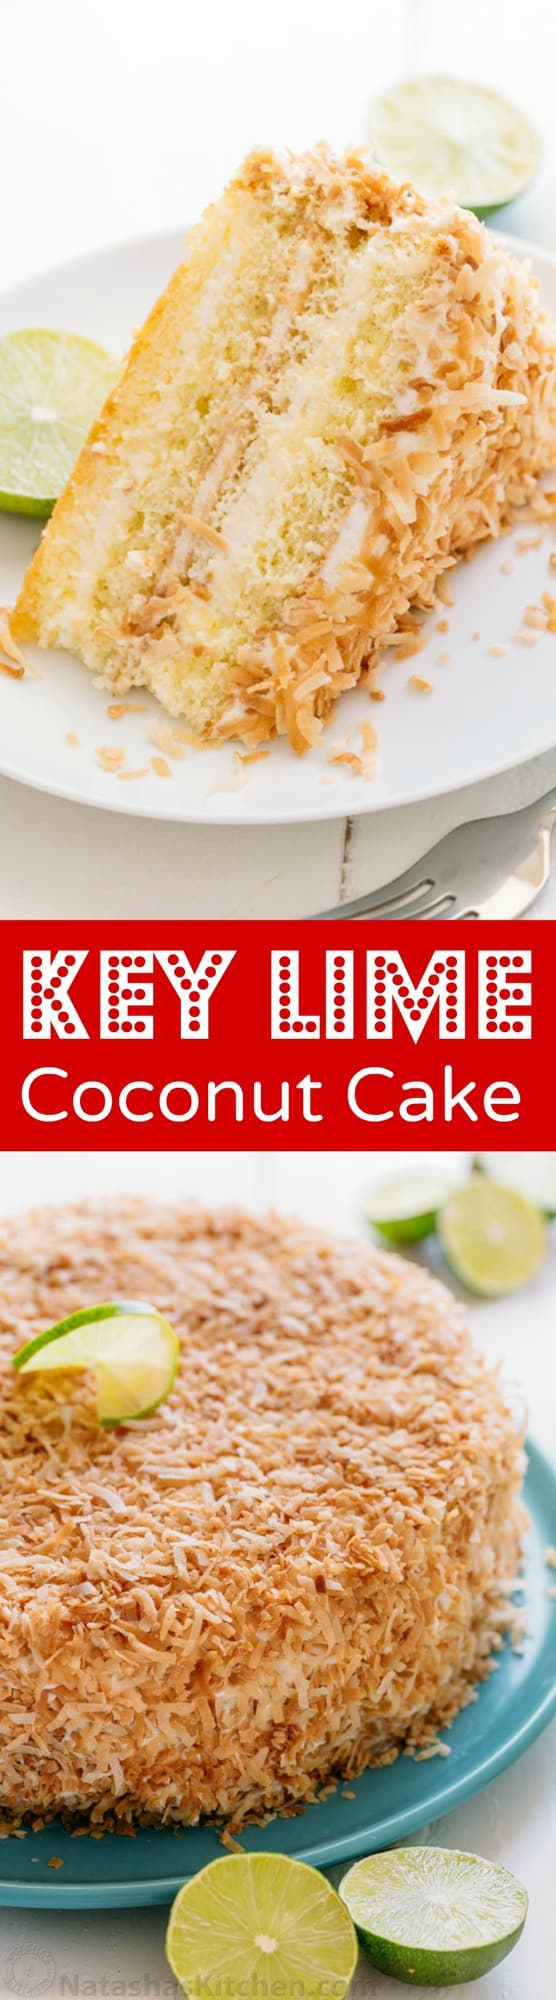 Coconut Cake Using Sour Cream